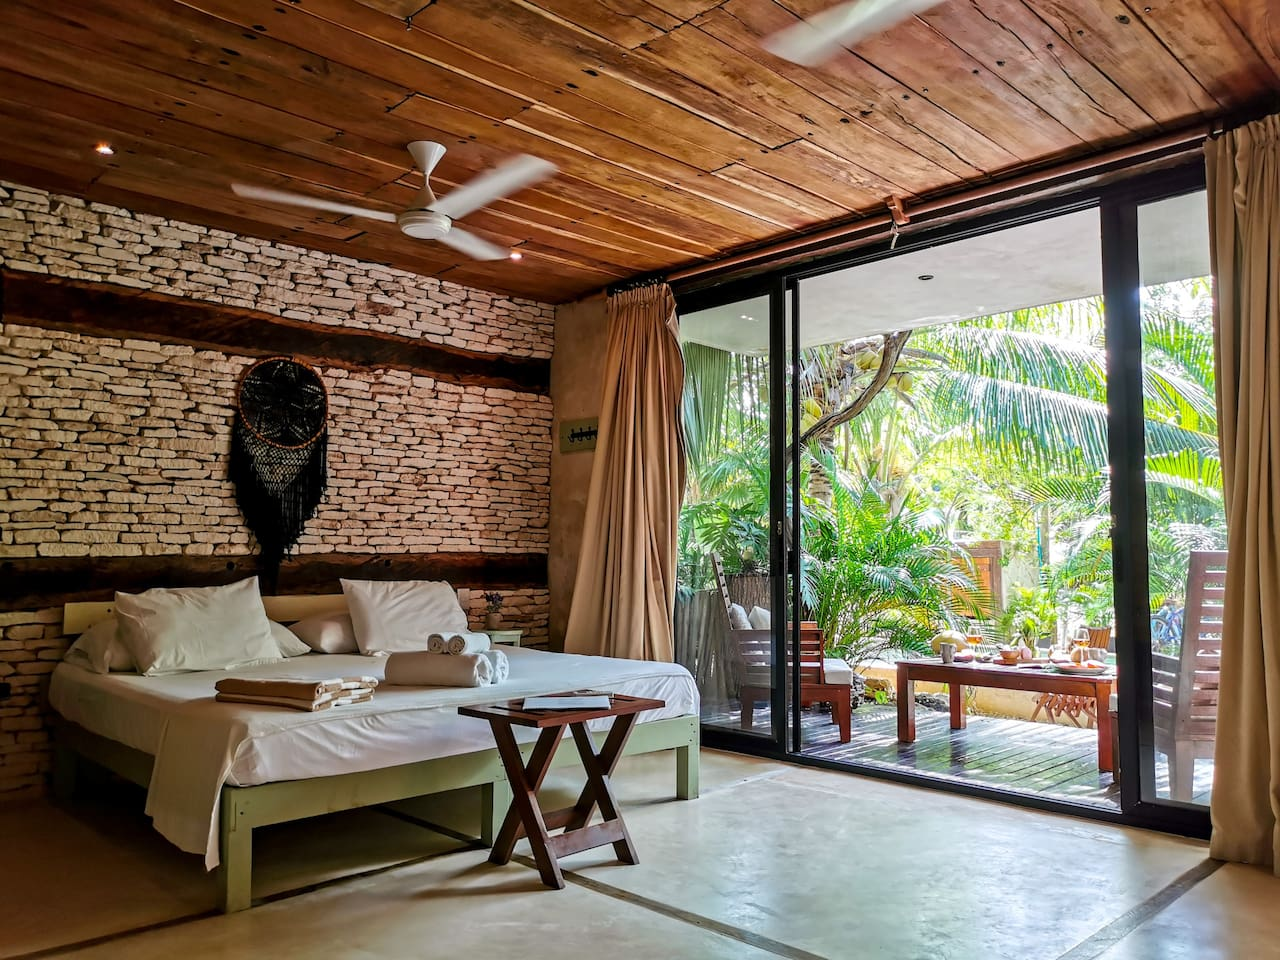 Suites Tulum is 2 minutes walking distance to the beach, 5 double rooms with an independent entrance each, en suite bathroom, kitchenette with a gas stove and a mini fridge, airconditioning from 7 pm to 5 am. Sleeps up to 10 people